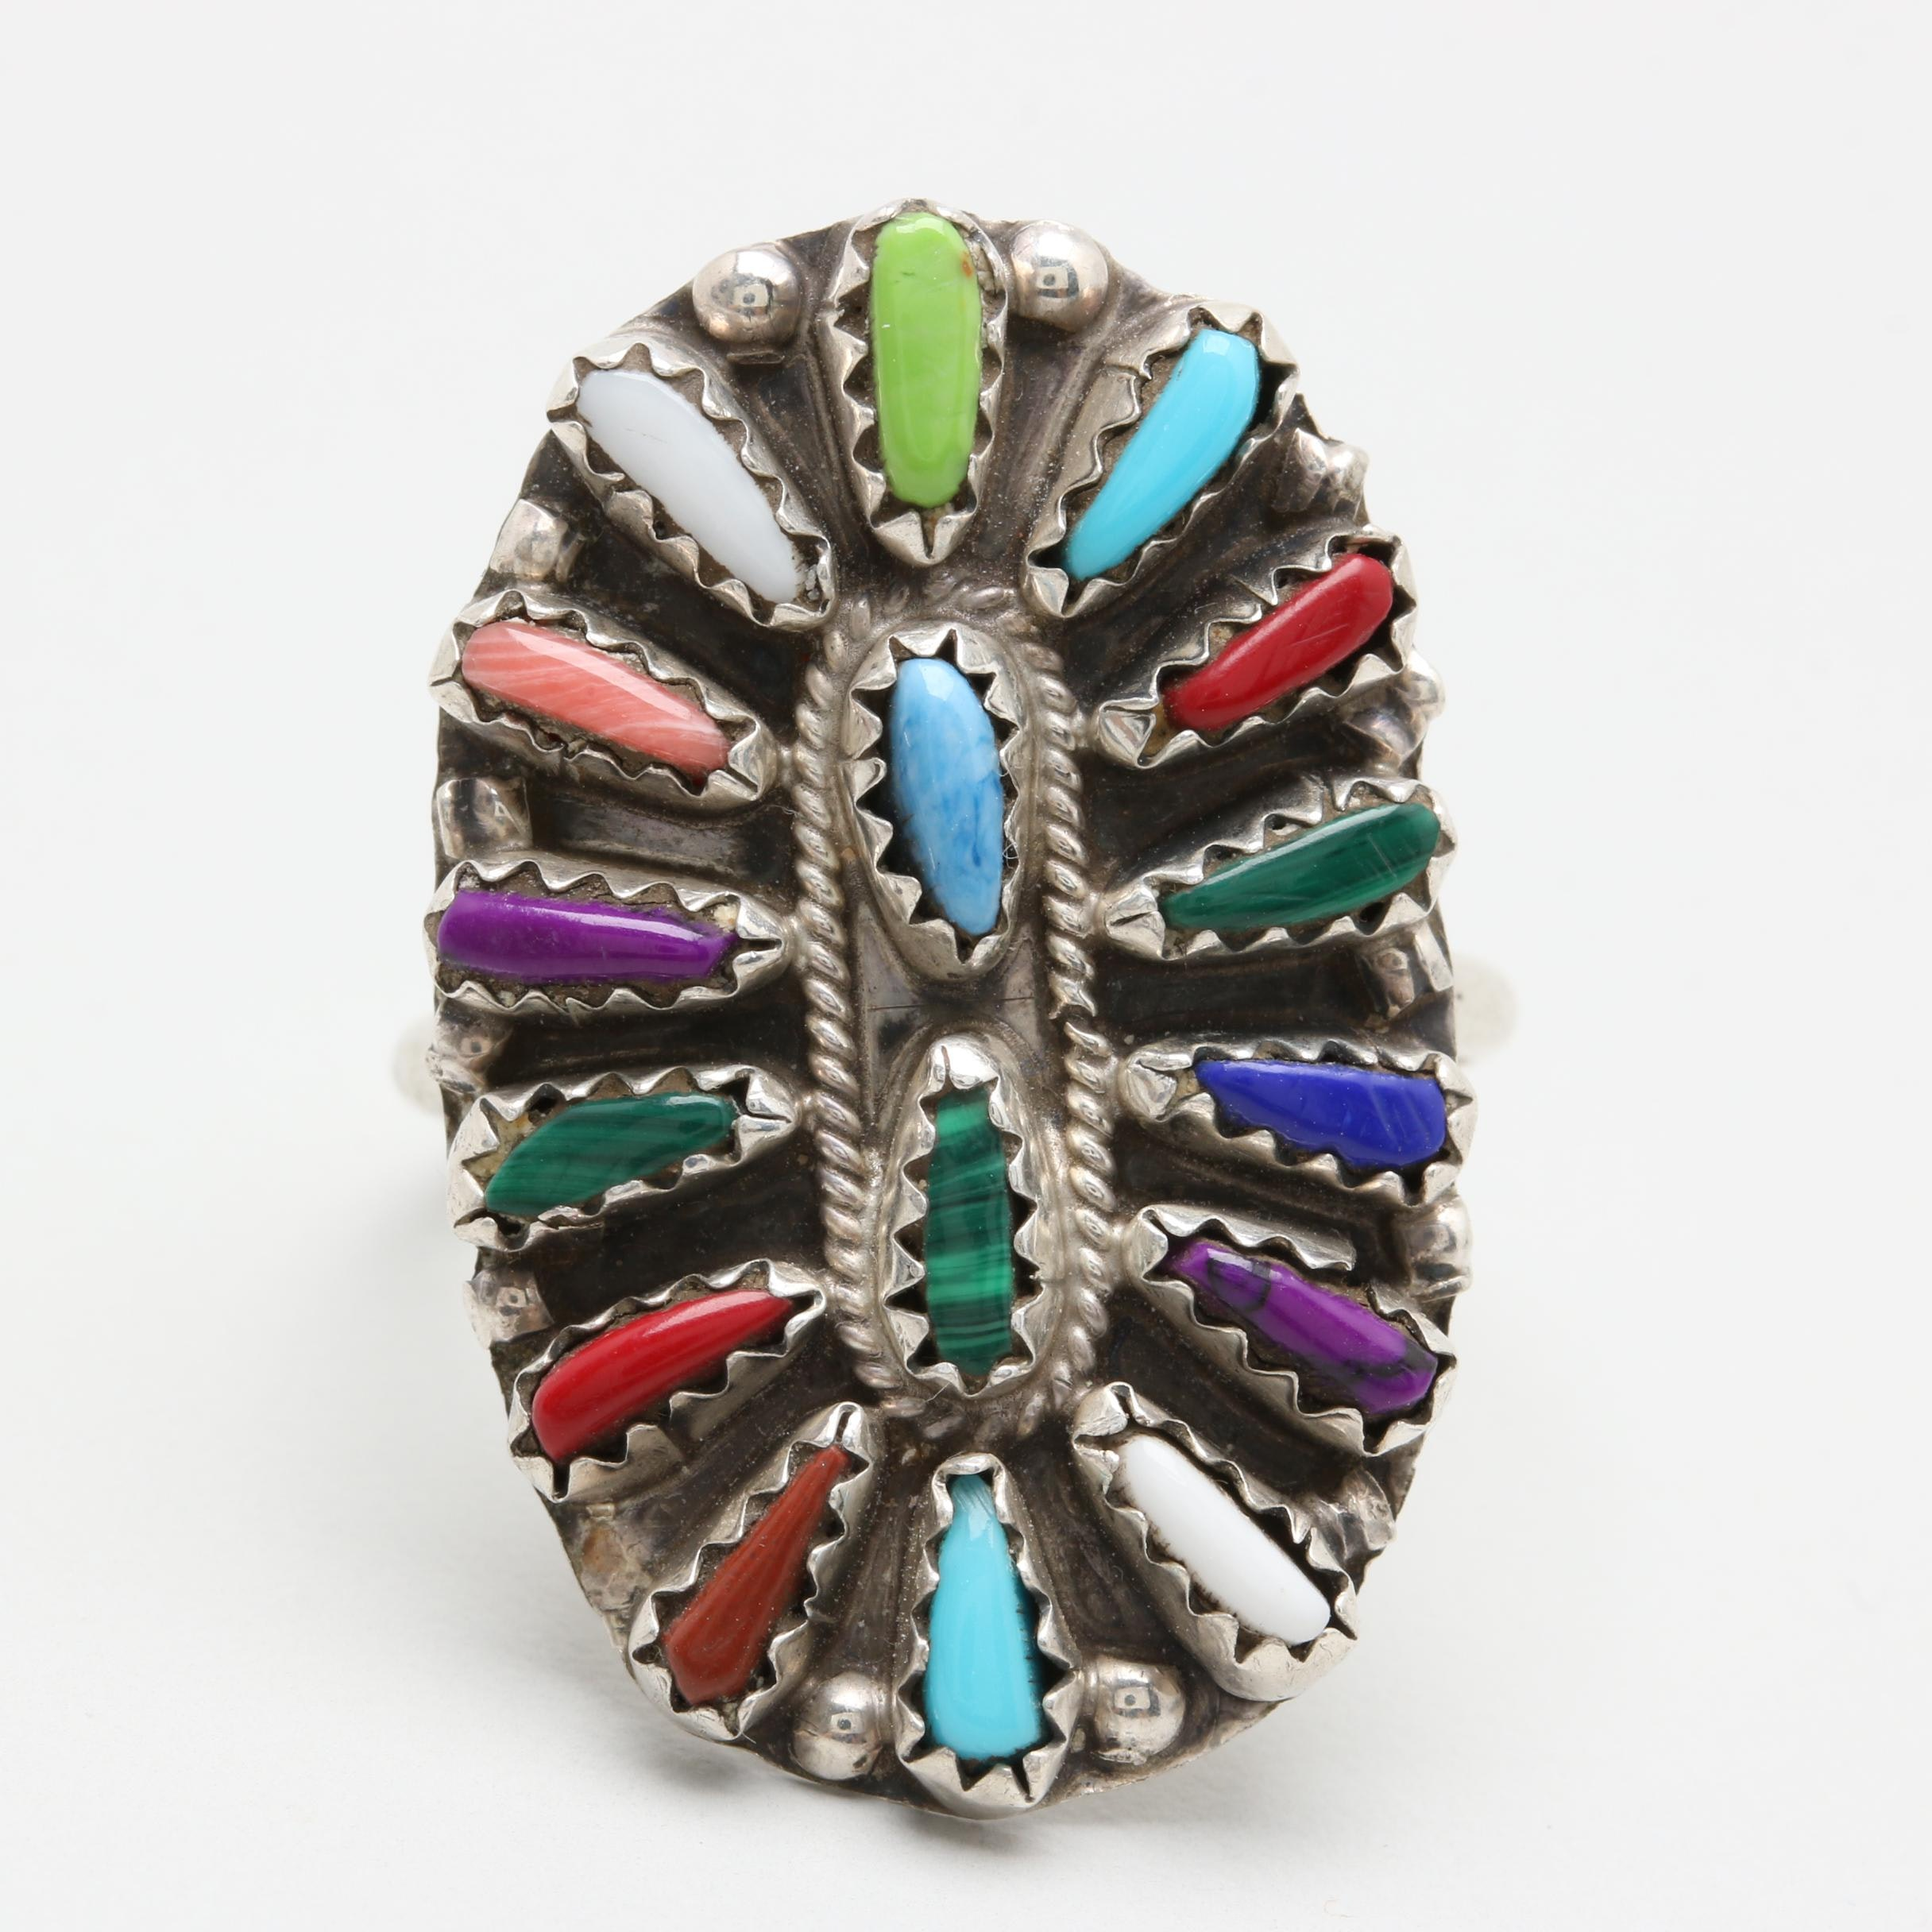 Violet Begay Navajo Diné Sterling Silver Needlepoint Ring Including Turquoise